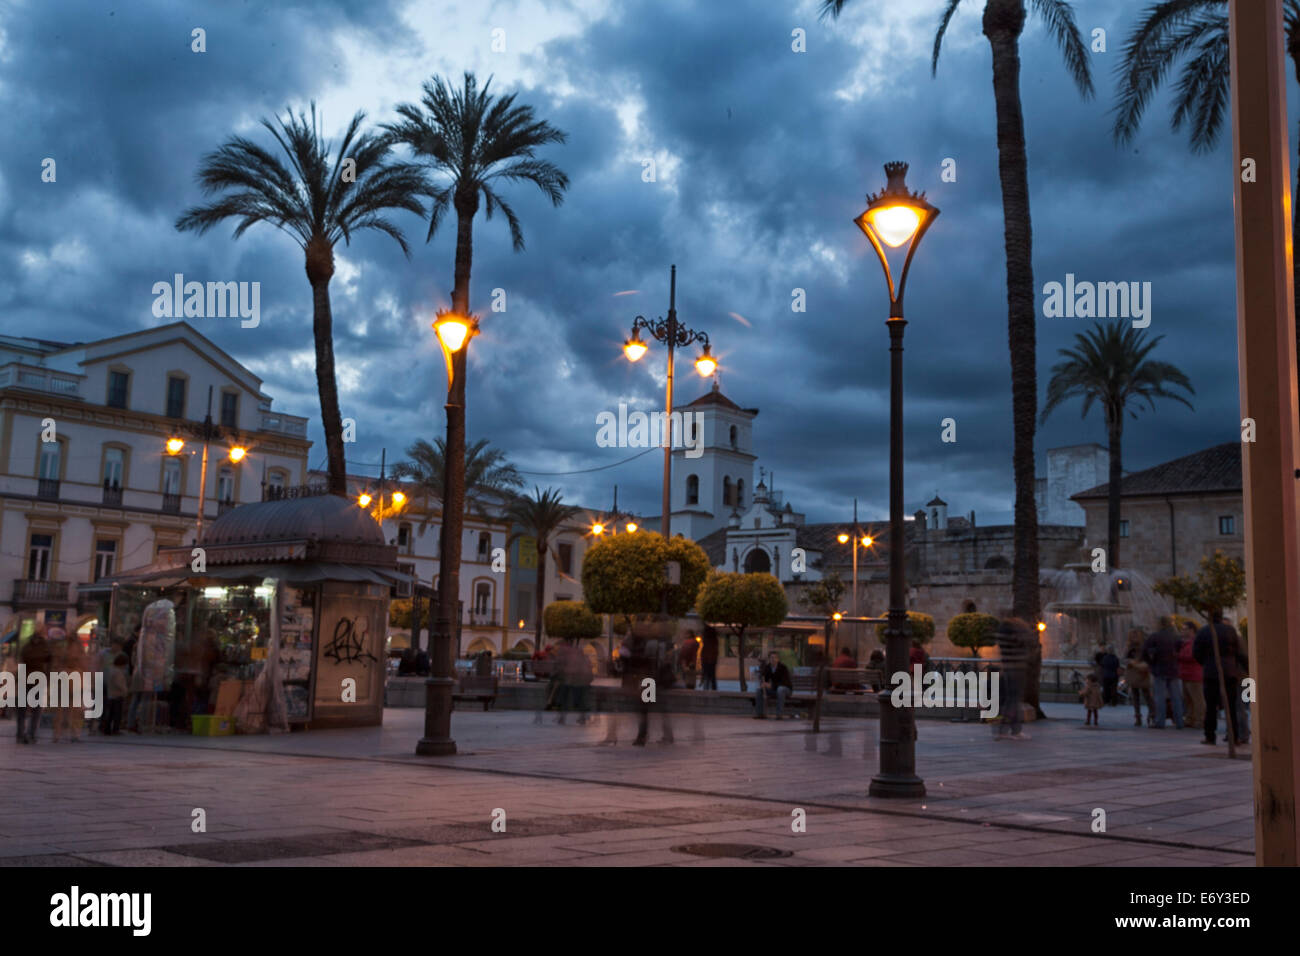 People walk and play in the Plaza Mayor of Merida Spain during the evening hours and the street lights come on. - Stock Image